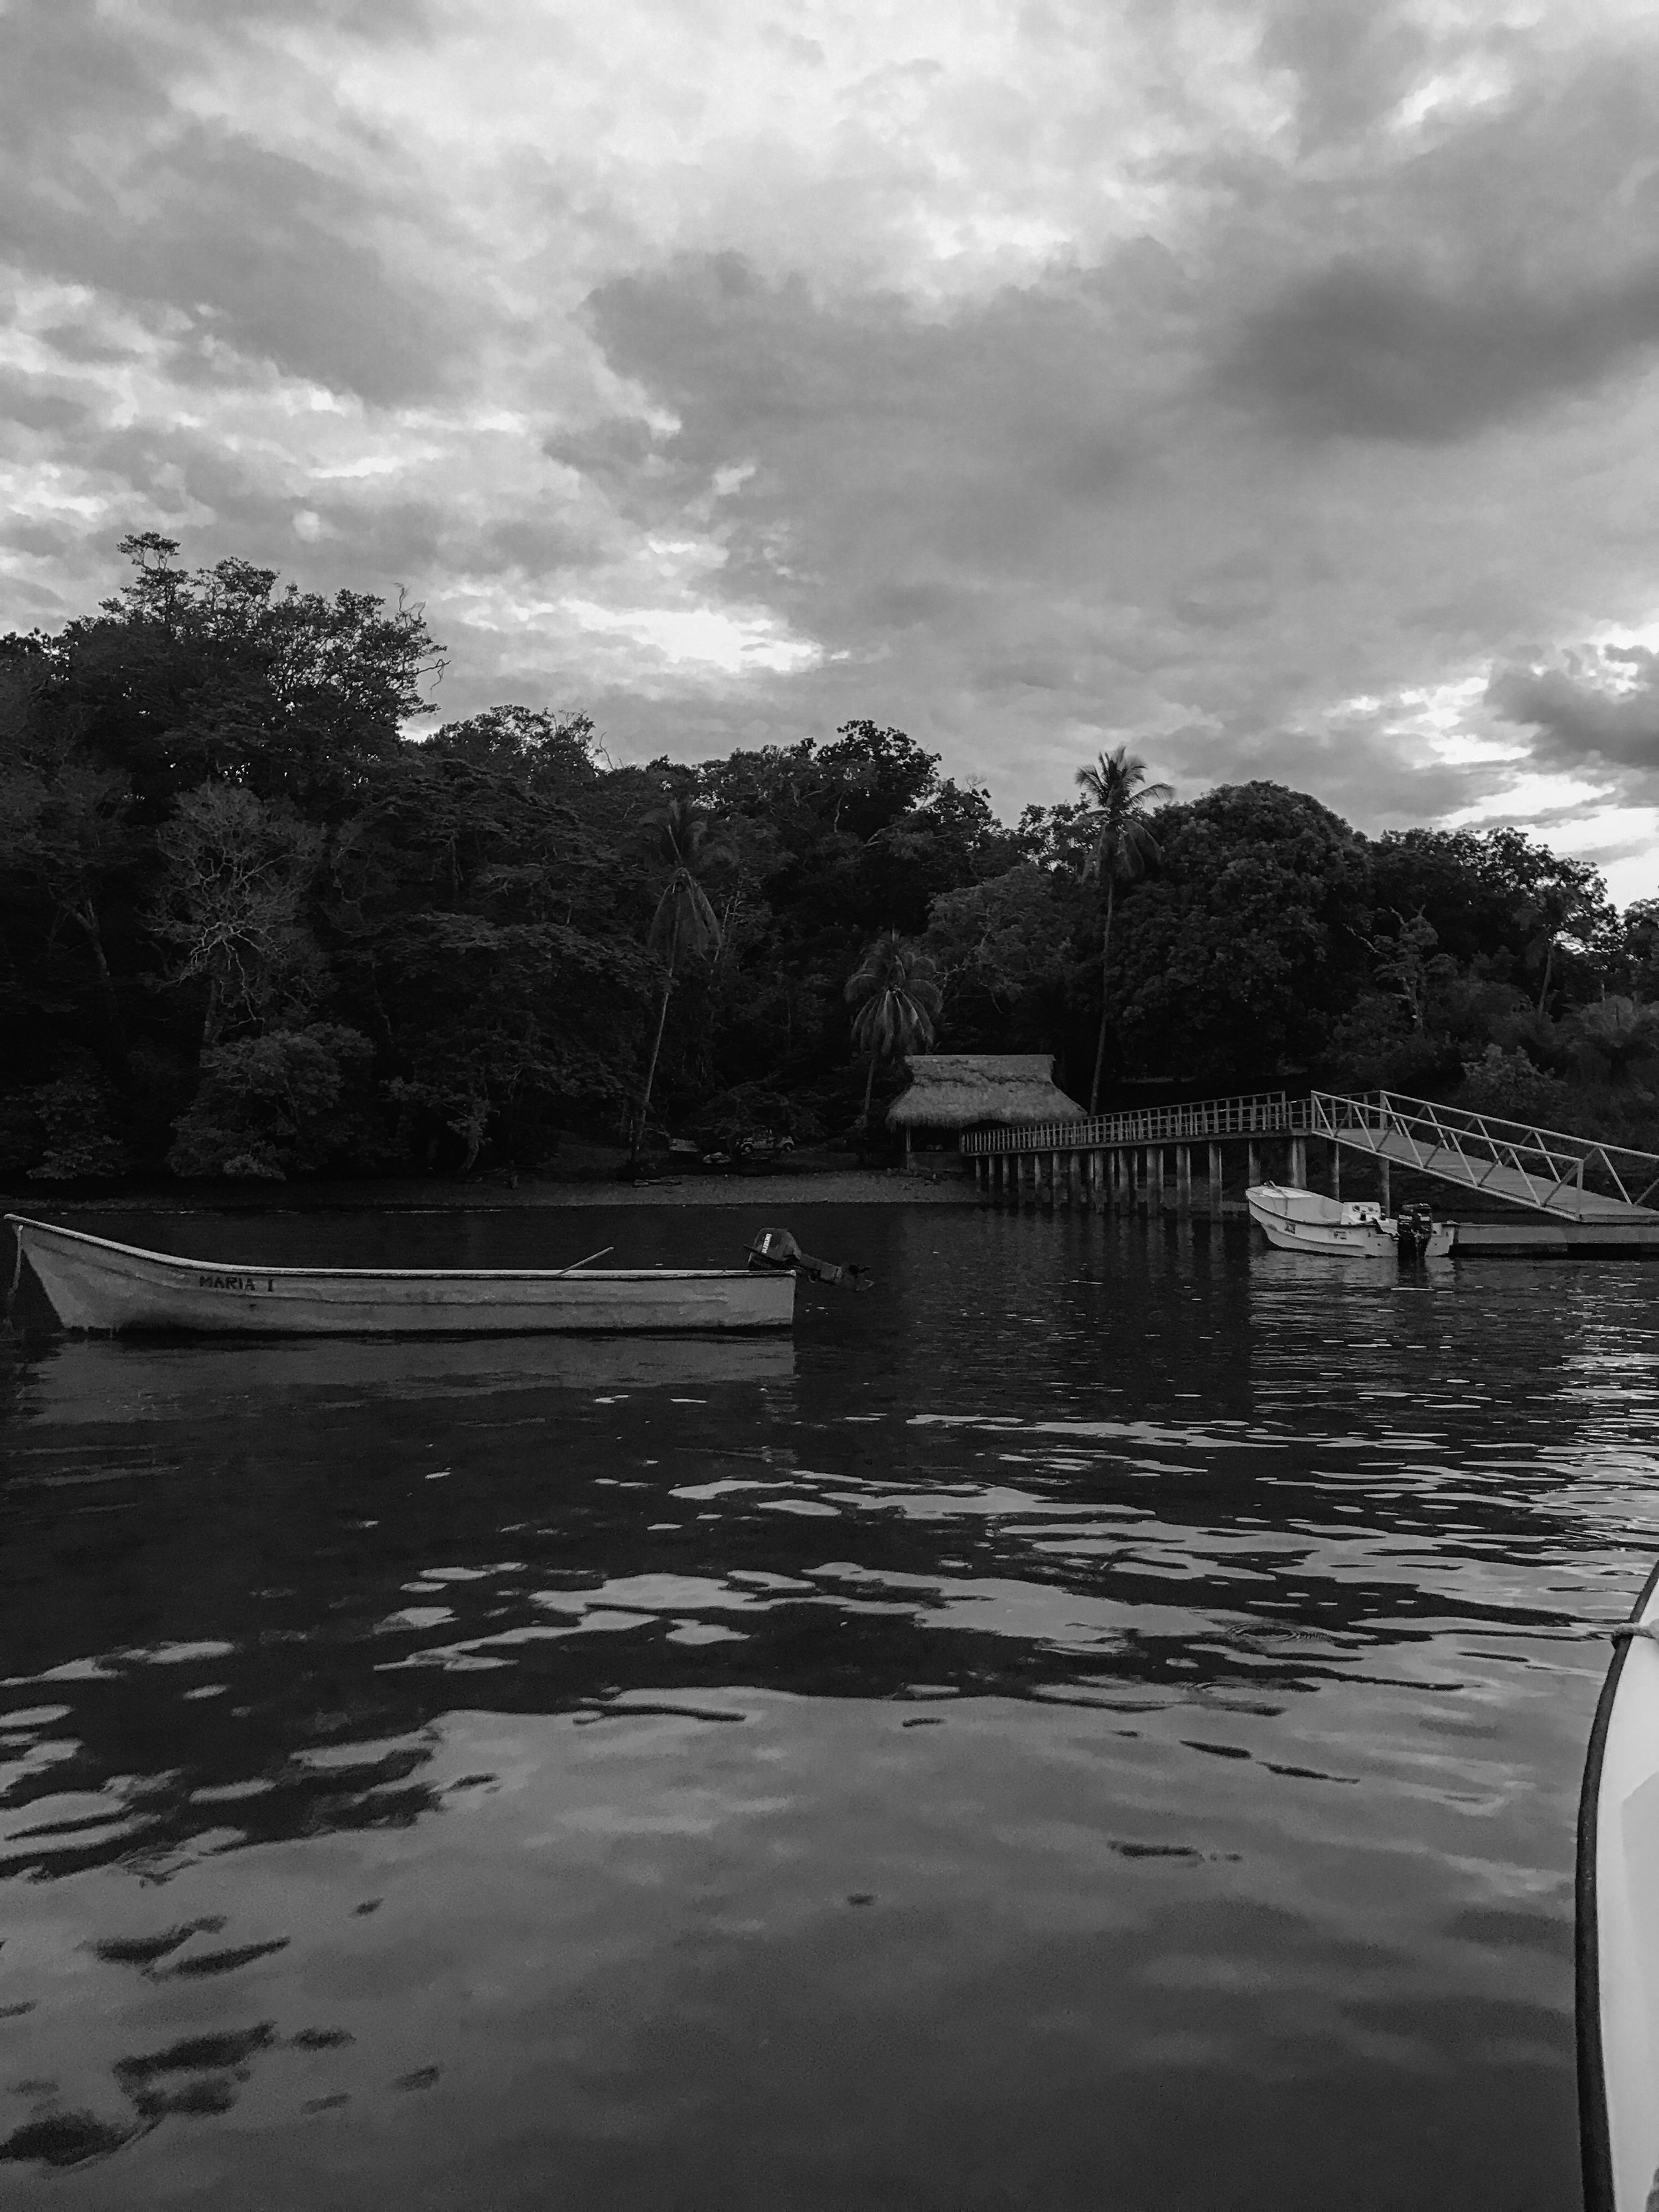 Arriving to the main dock at Isla Palenque